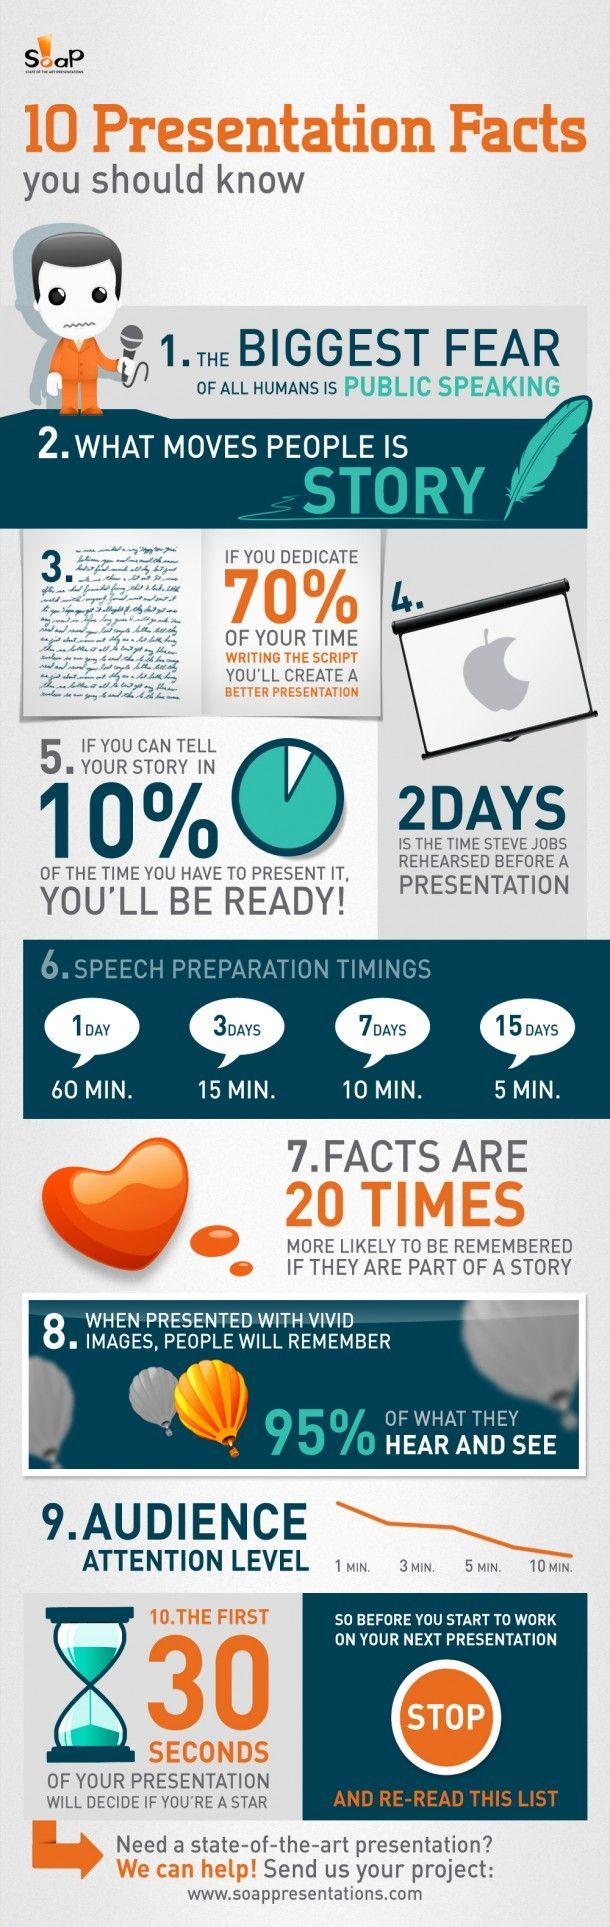 10 Presentation Facts That Make Public Speaking (a Little) Less Scary